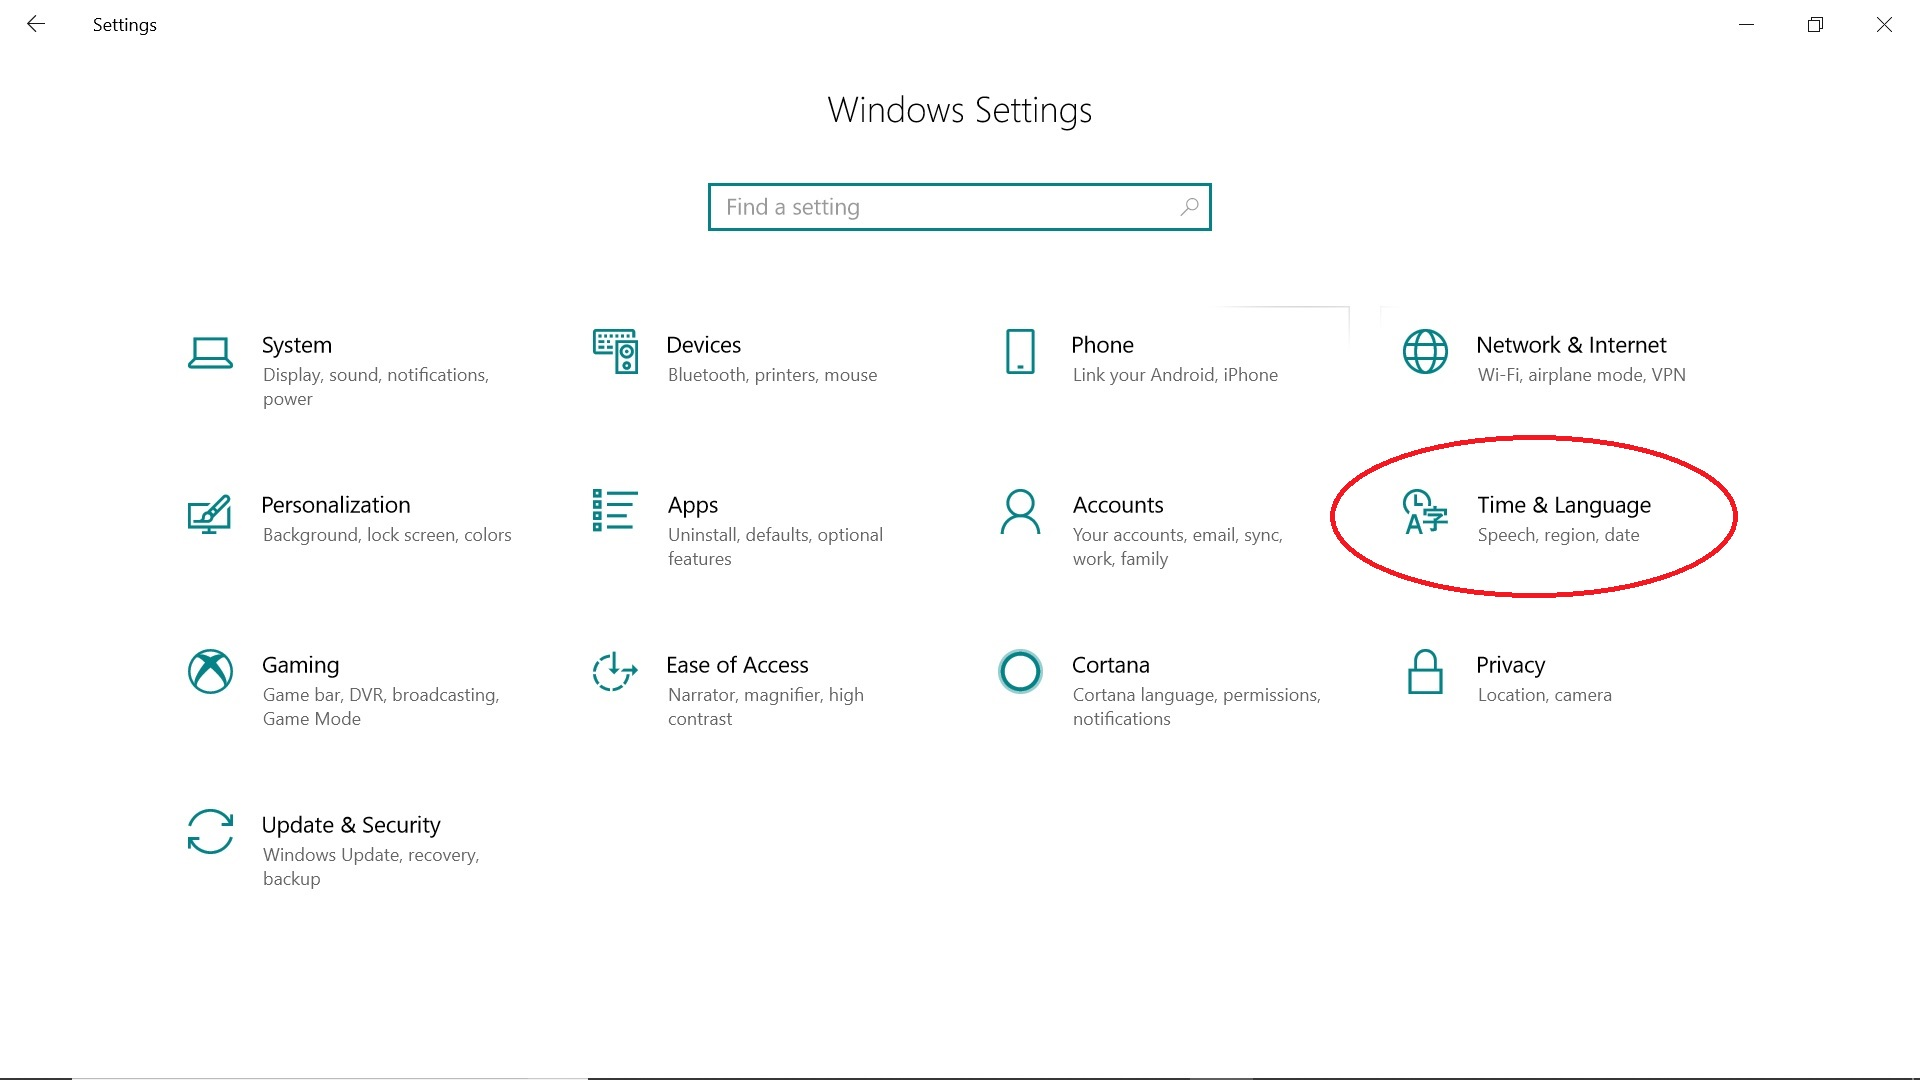 How do I download Windows voices for use in the CoughDrop Windows